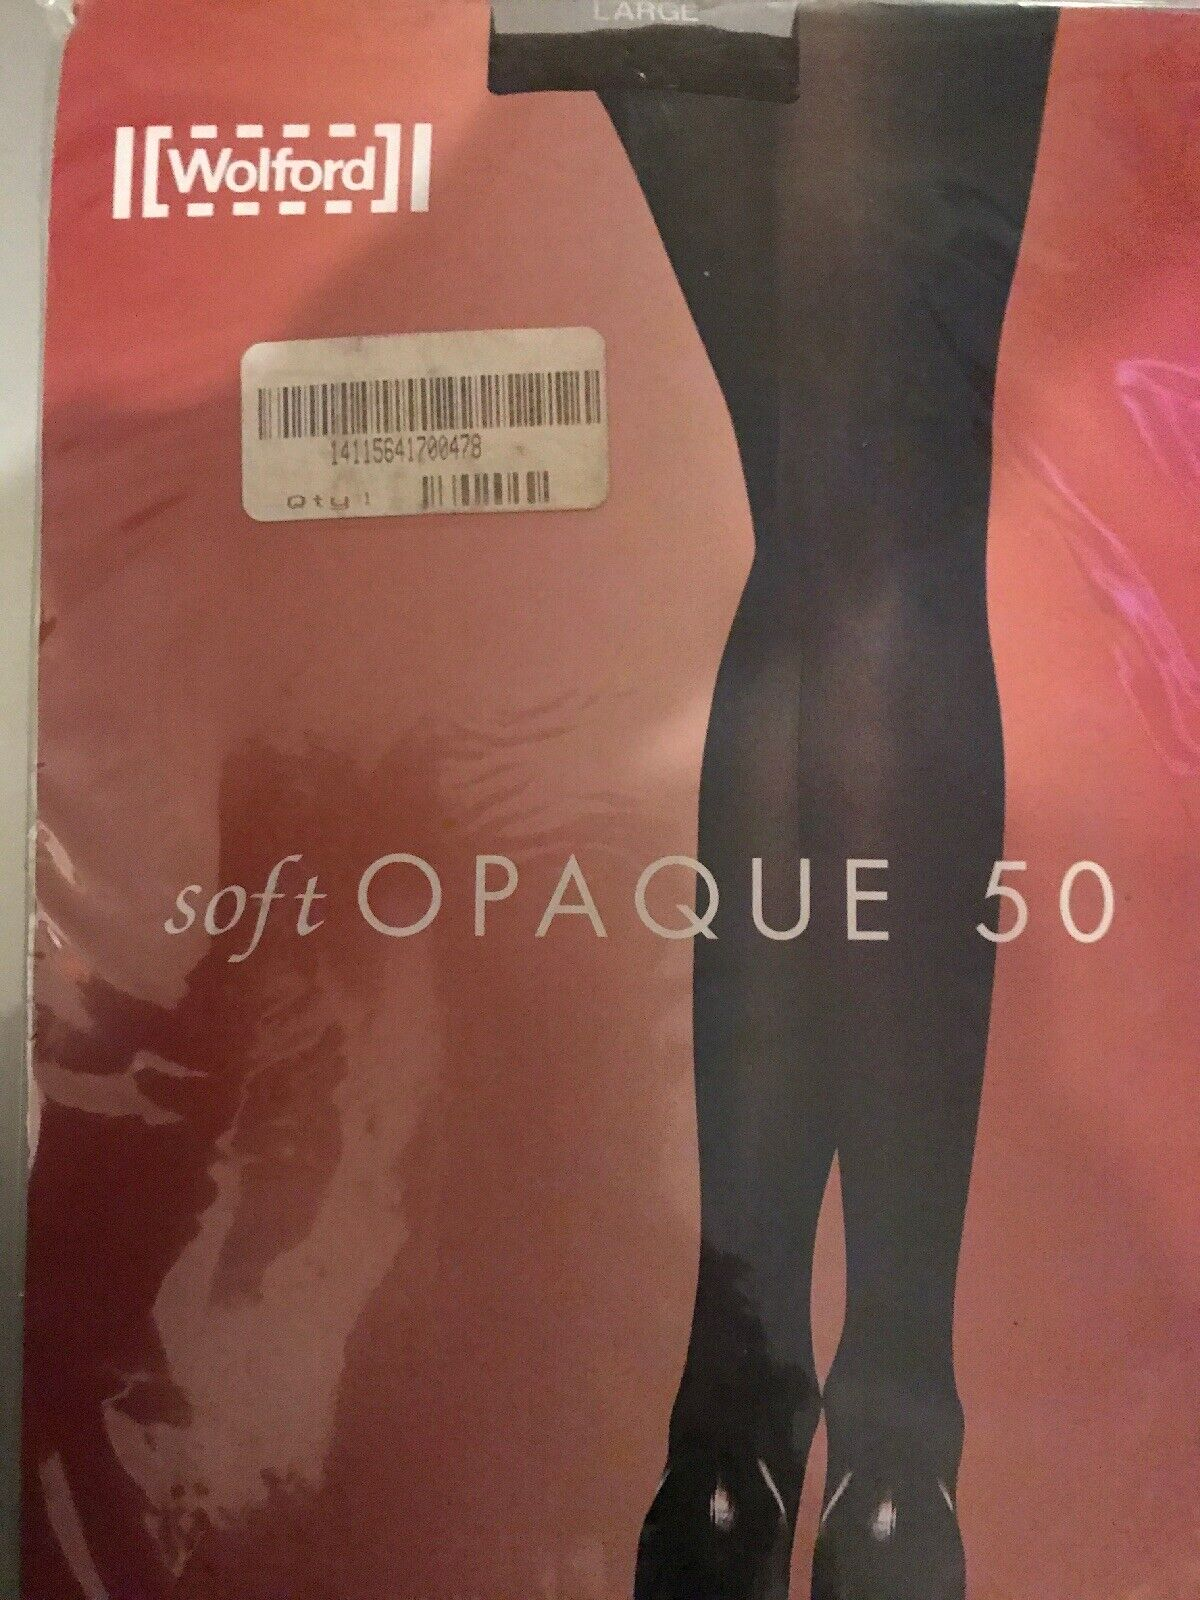 Wolford Soft Opaque 50 Tights Size  Large color  Coca 18536 - 12